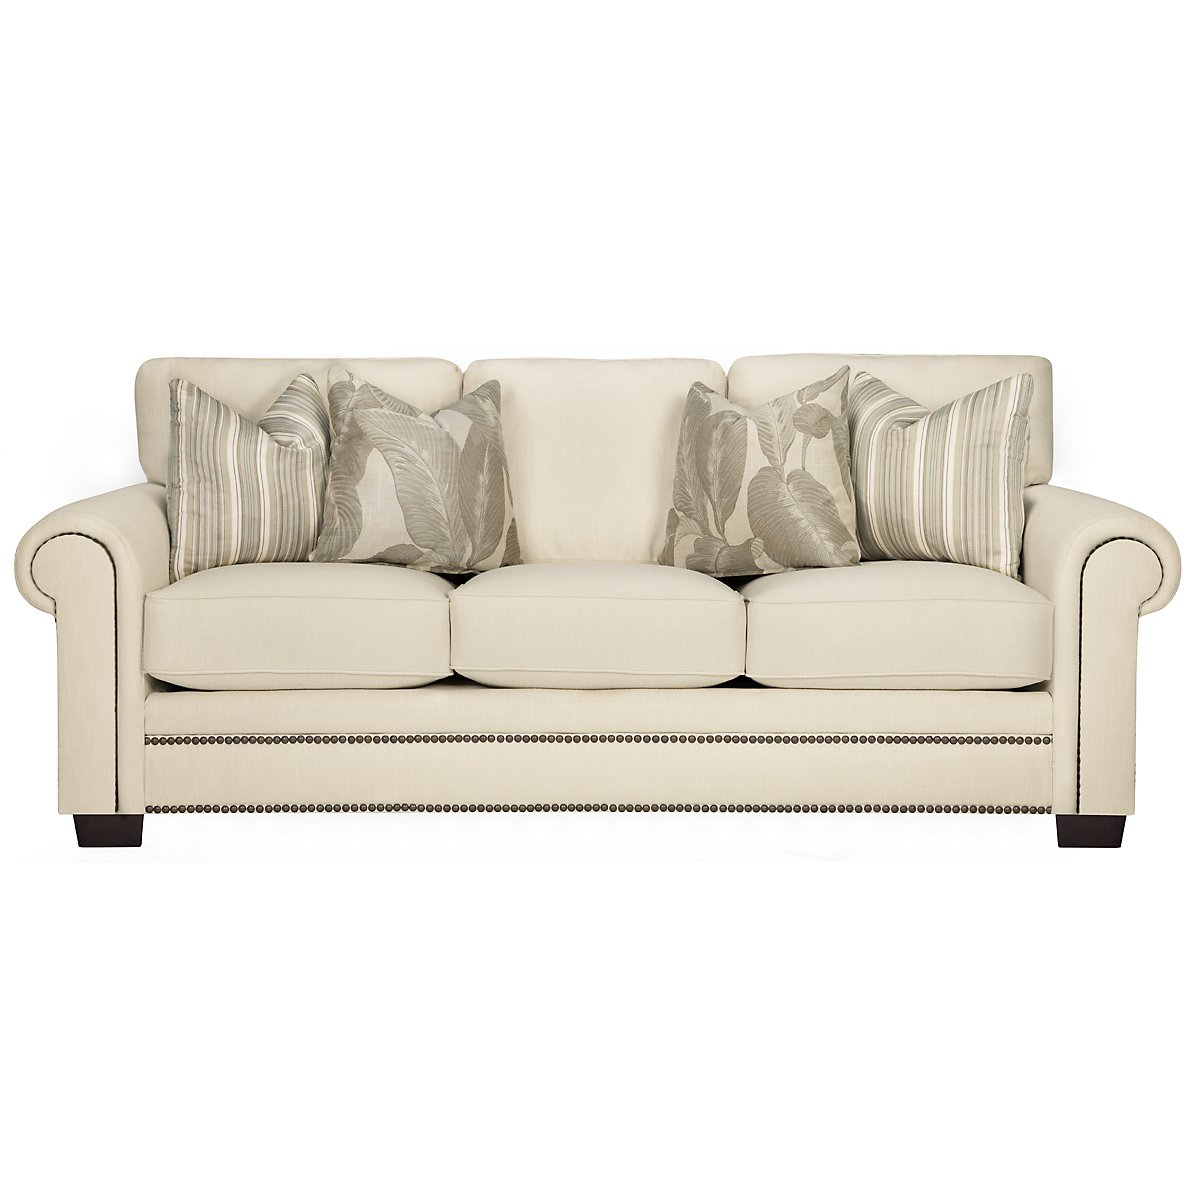 Erin White Fabric Sofa